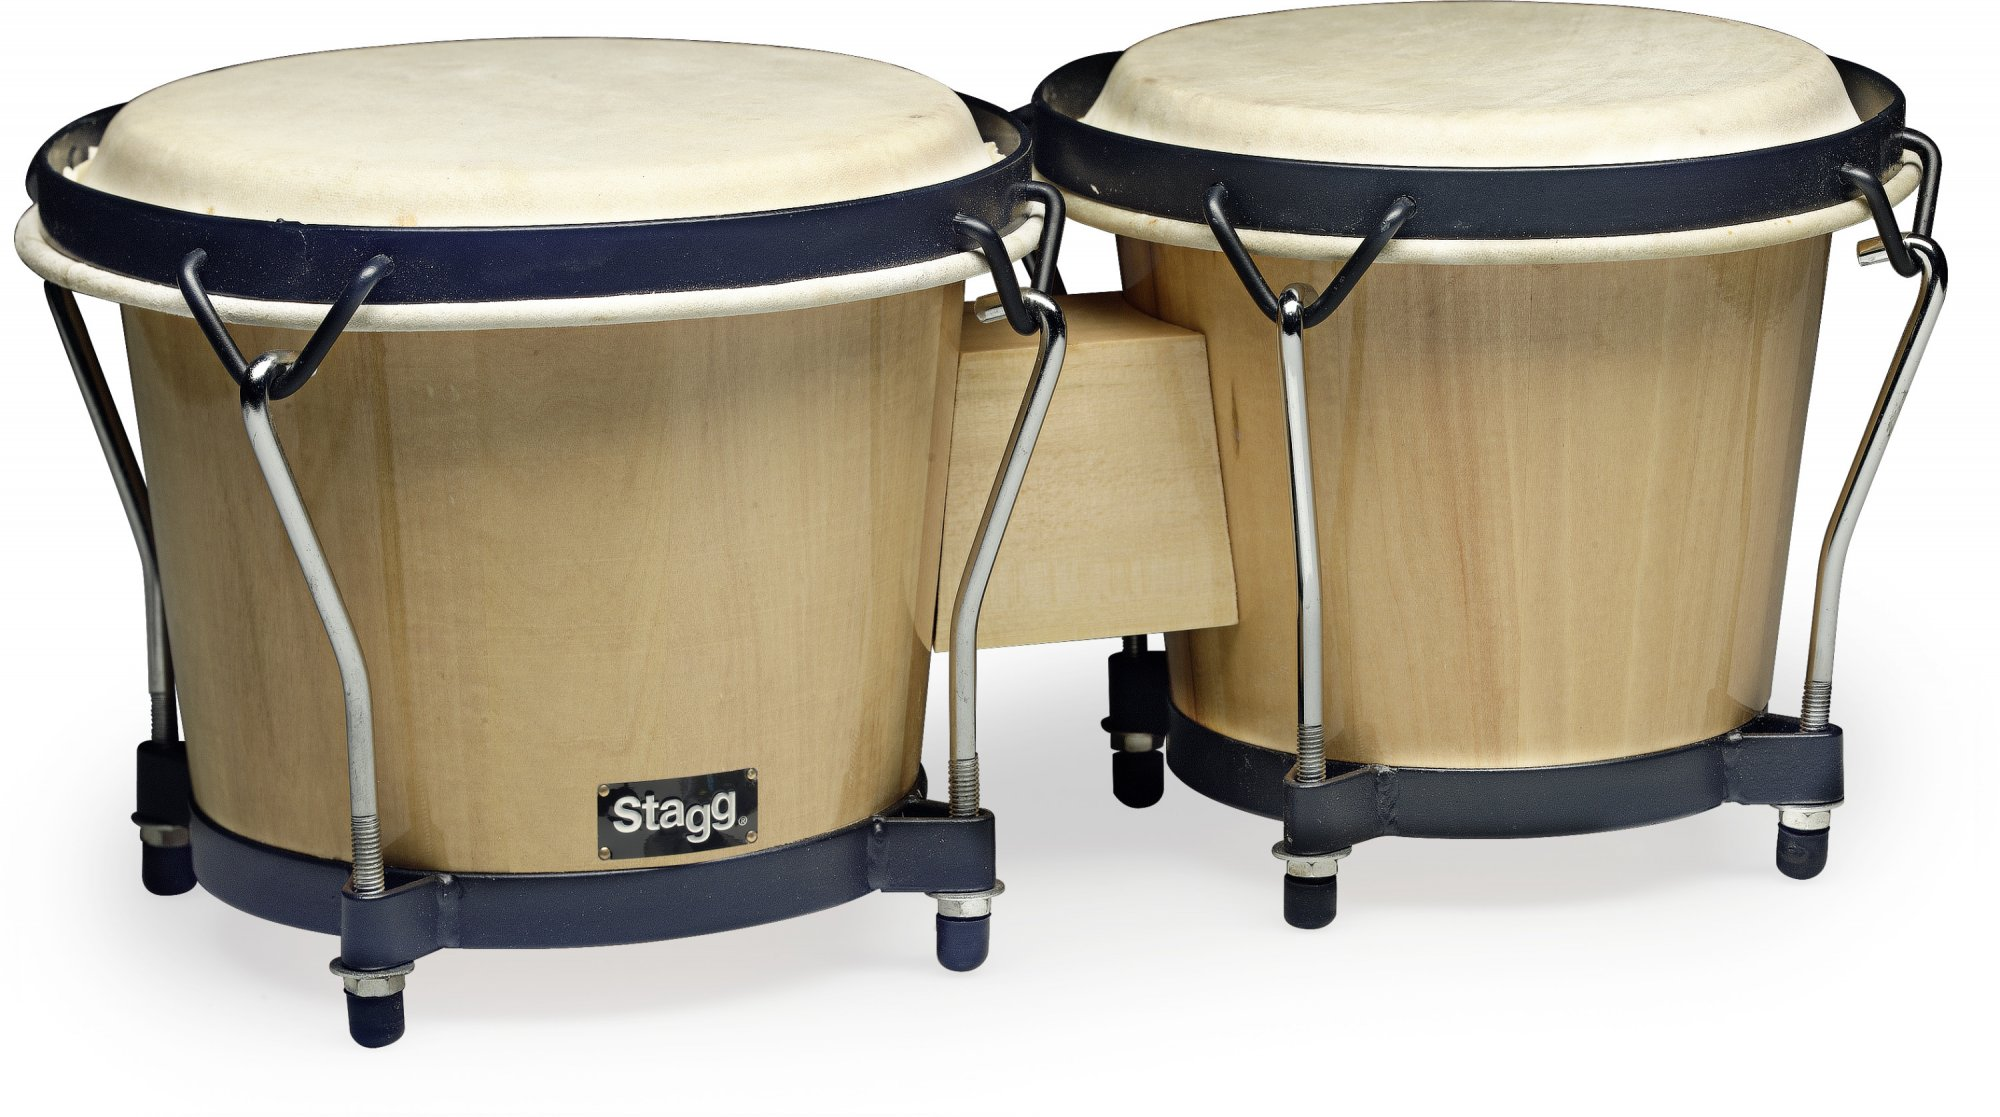 Stagg 6 & 7 Traditional Wooden Bongo Set - Natural